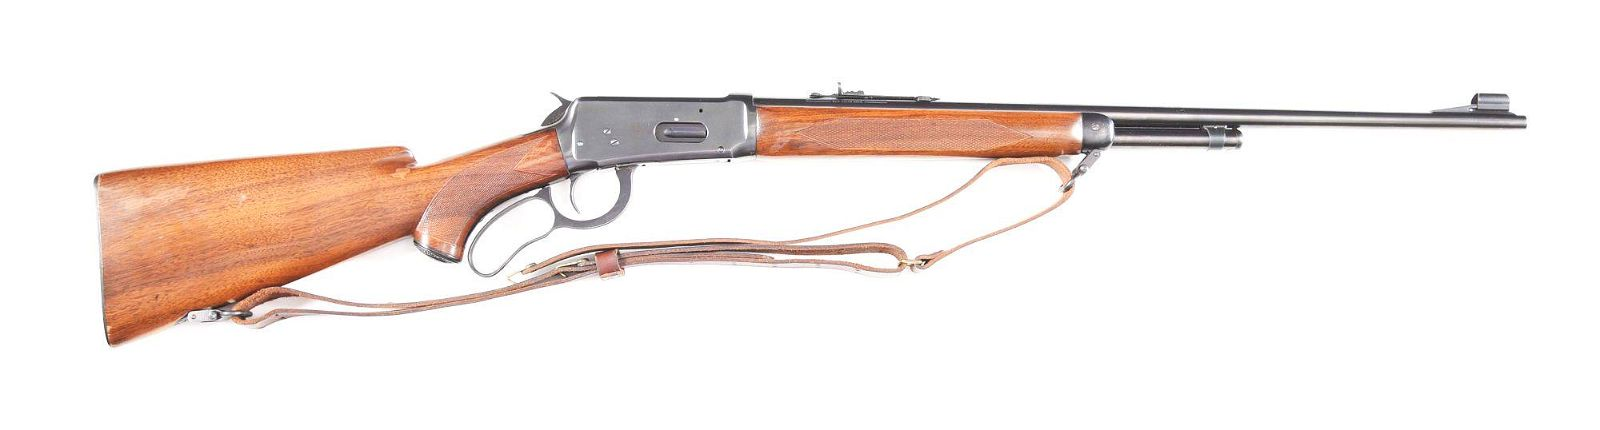 (C) WINCHESTER MODEL 64 DELUXE LEVER ACTION RIFLE IN